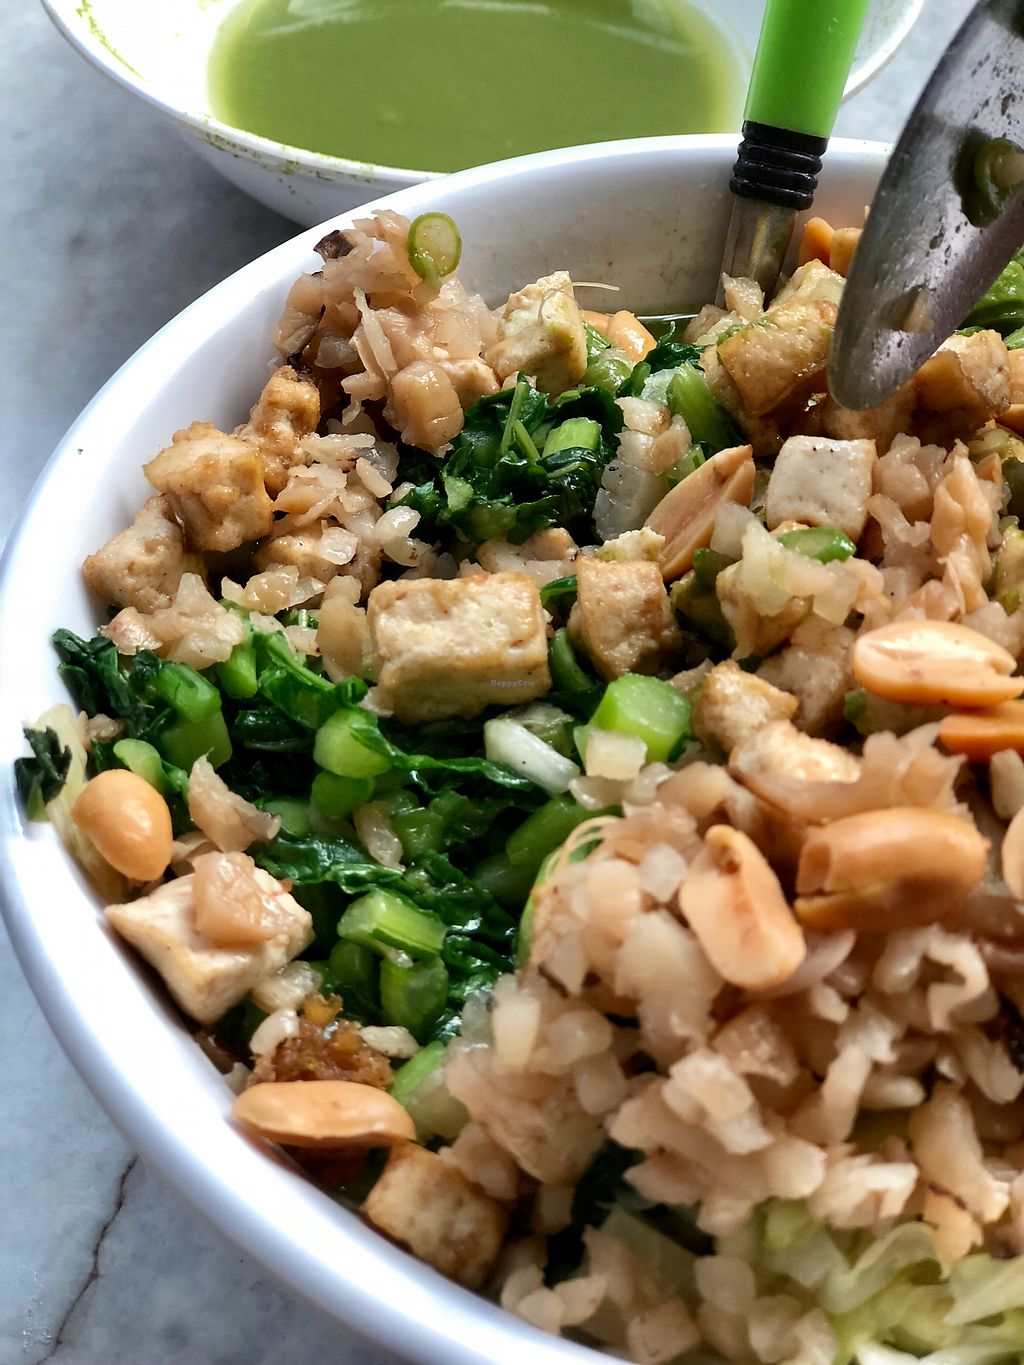 """Photo of Fortune Tree Vegetarian  by <a href=""""/members/profile/CherylQuincy"""">CherylQuincy</a> <br/>Thunder tea rice (upsized) <br/> February 6, 2018  - <a href='/contact/abuse/image/80849/355517'>Report</a>"""